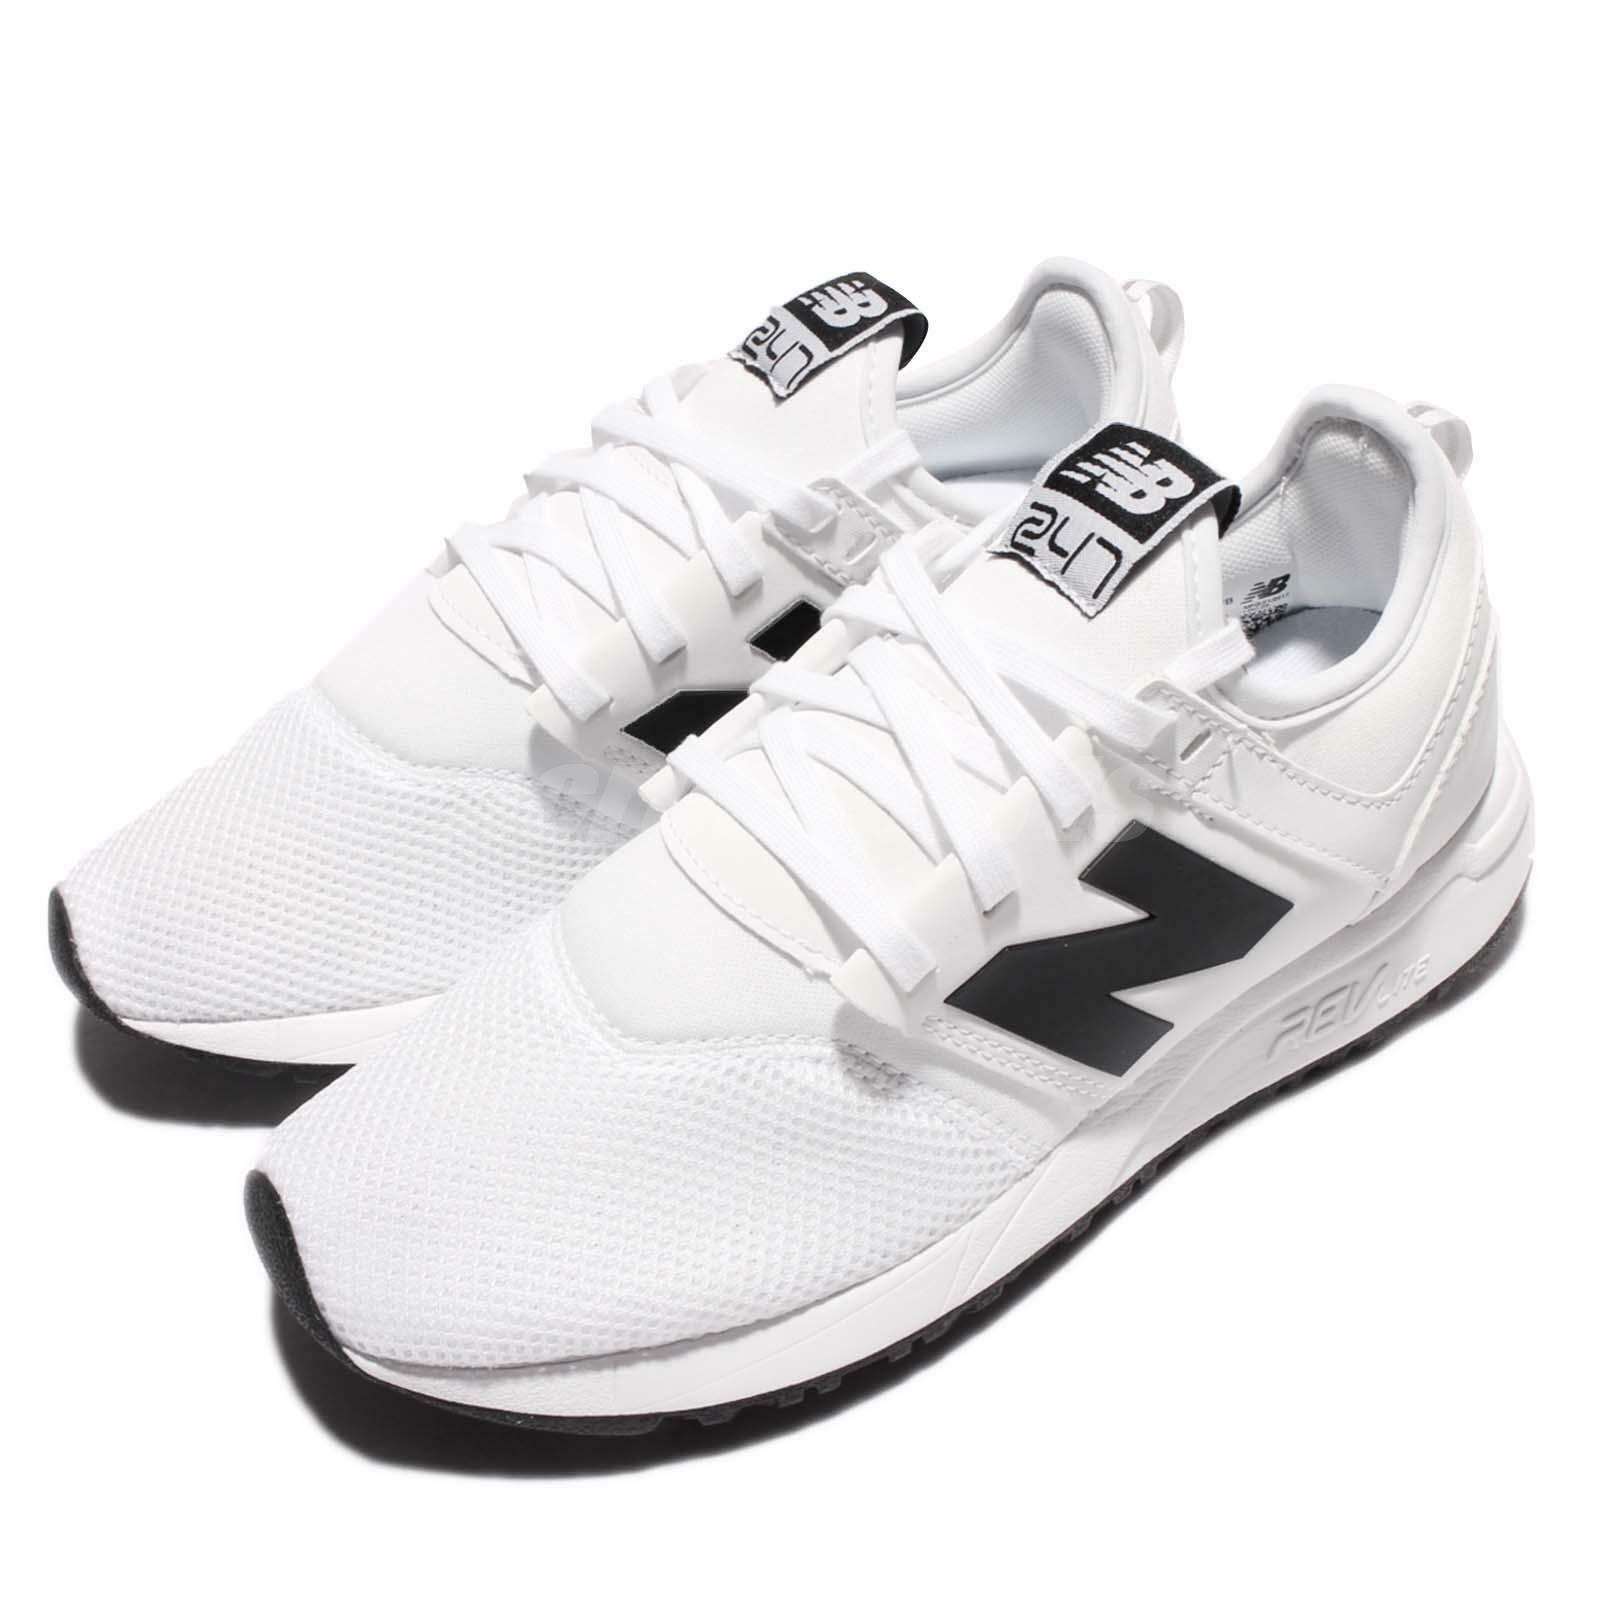 New Balance MRL247WB D BLack White Men Running Casual shoes Sneakers MRL247WBD